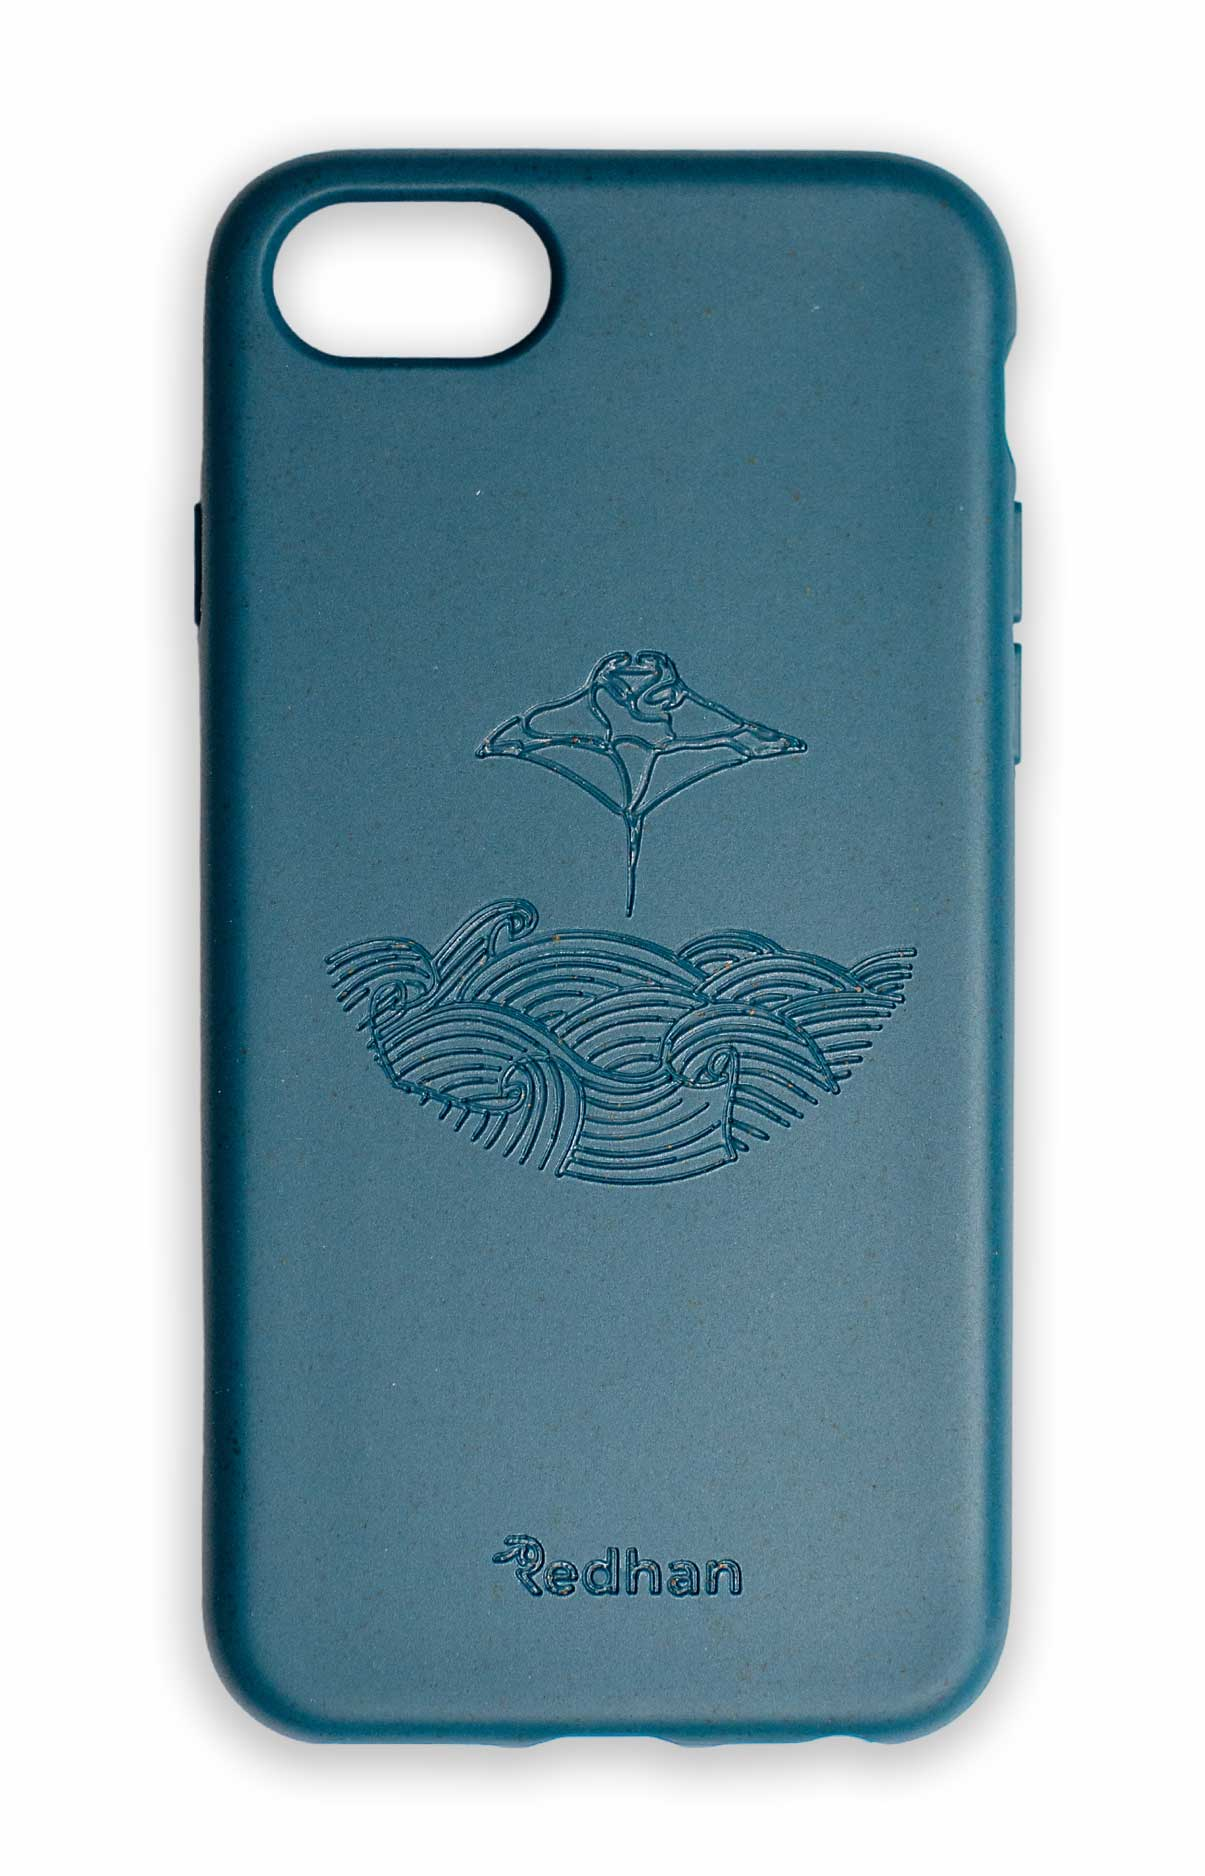 Manta Ray in Blue Navy - iPhone 6+/6S+/7+/8+ Cover